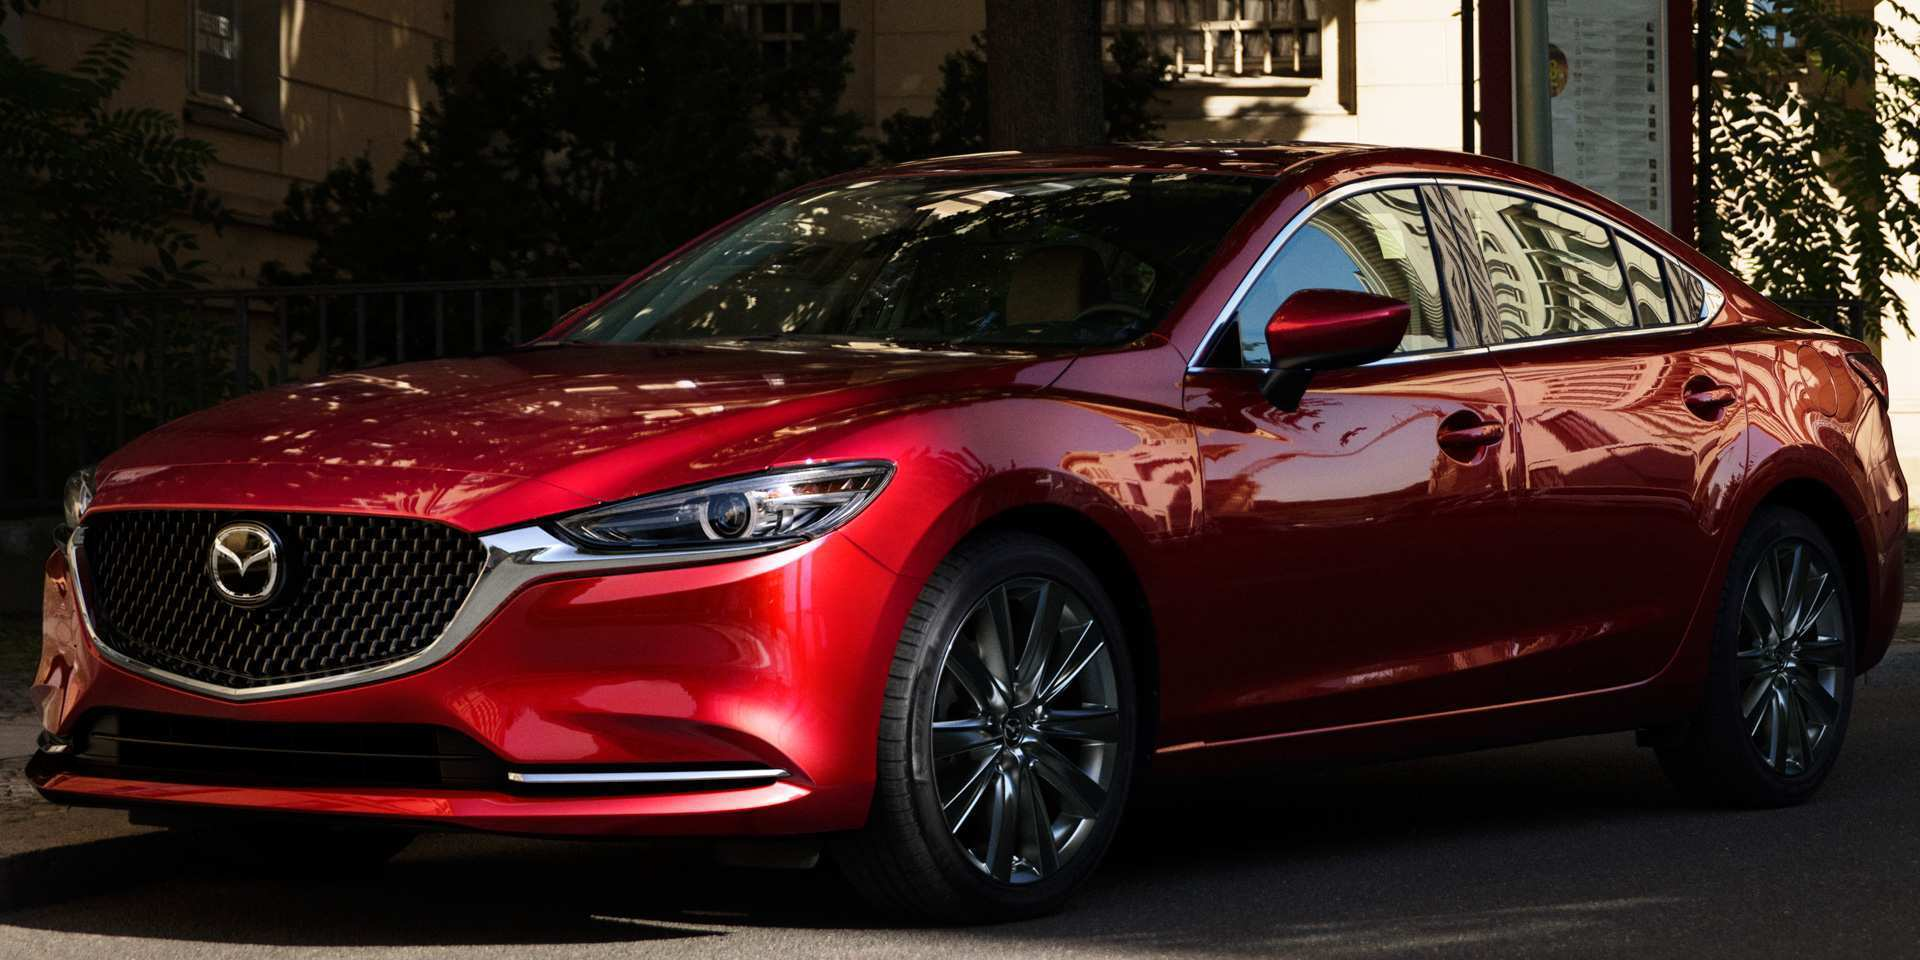 30 All New 2019 Mazda 6s Release Date And Concept